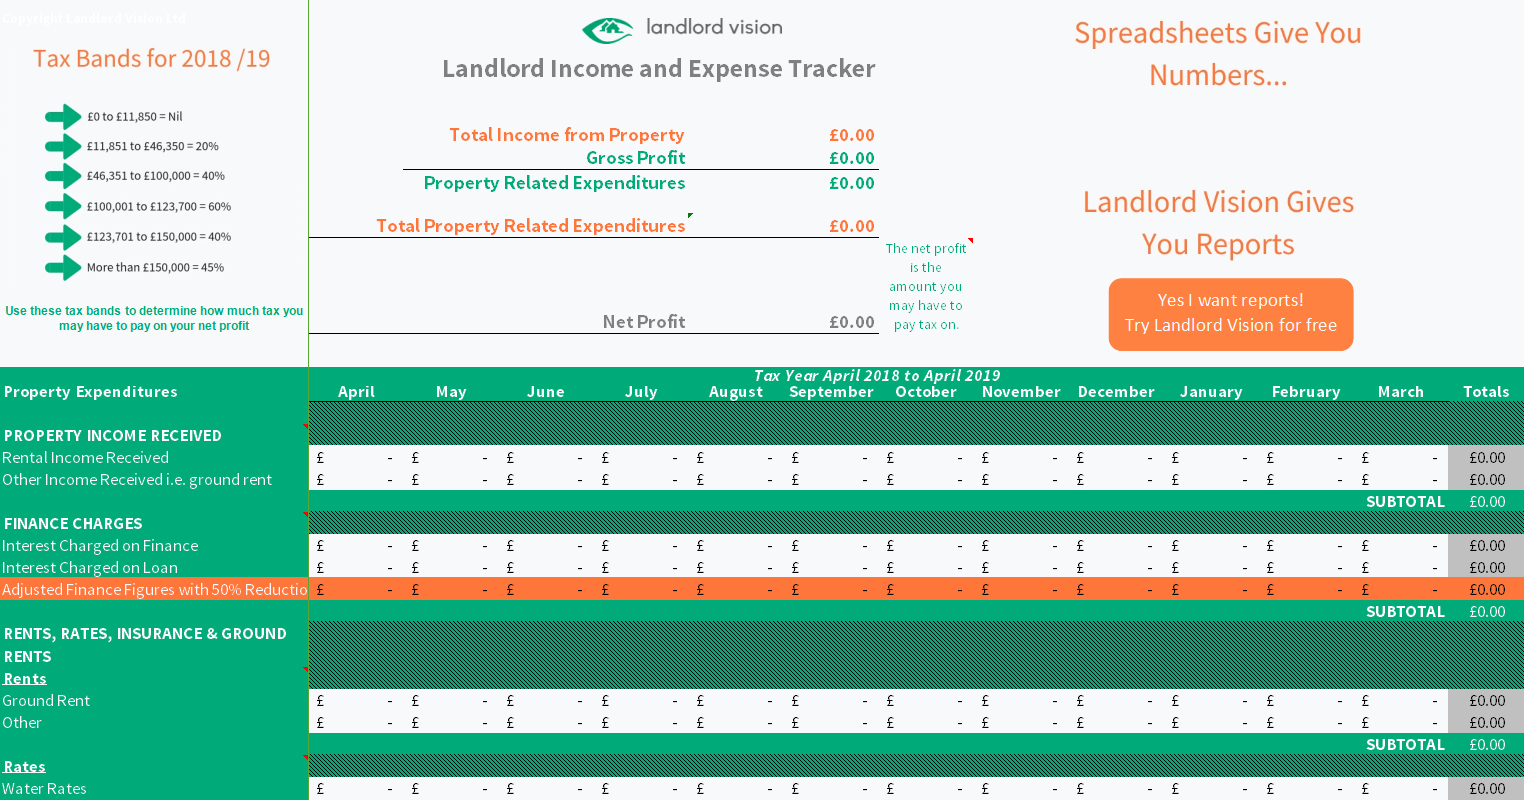 Income Tracker Spreadsheet For Free Rental Income And Expense Tracking Spreadsheet Download Page